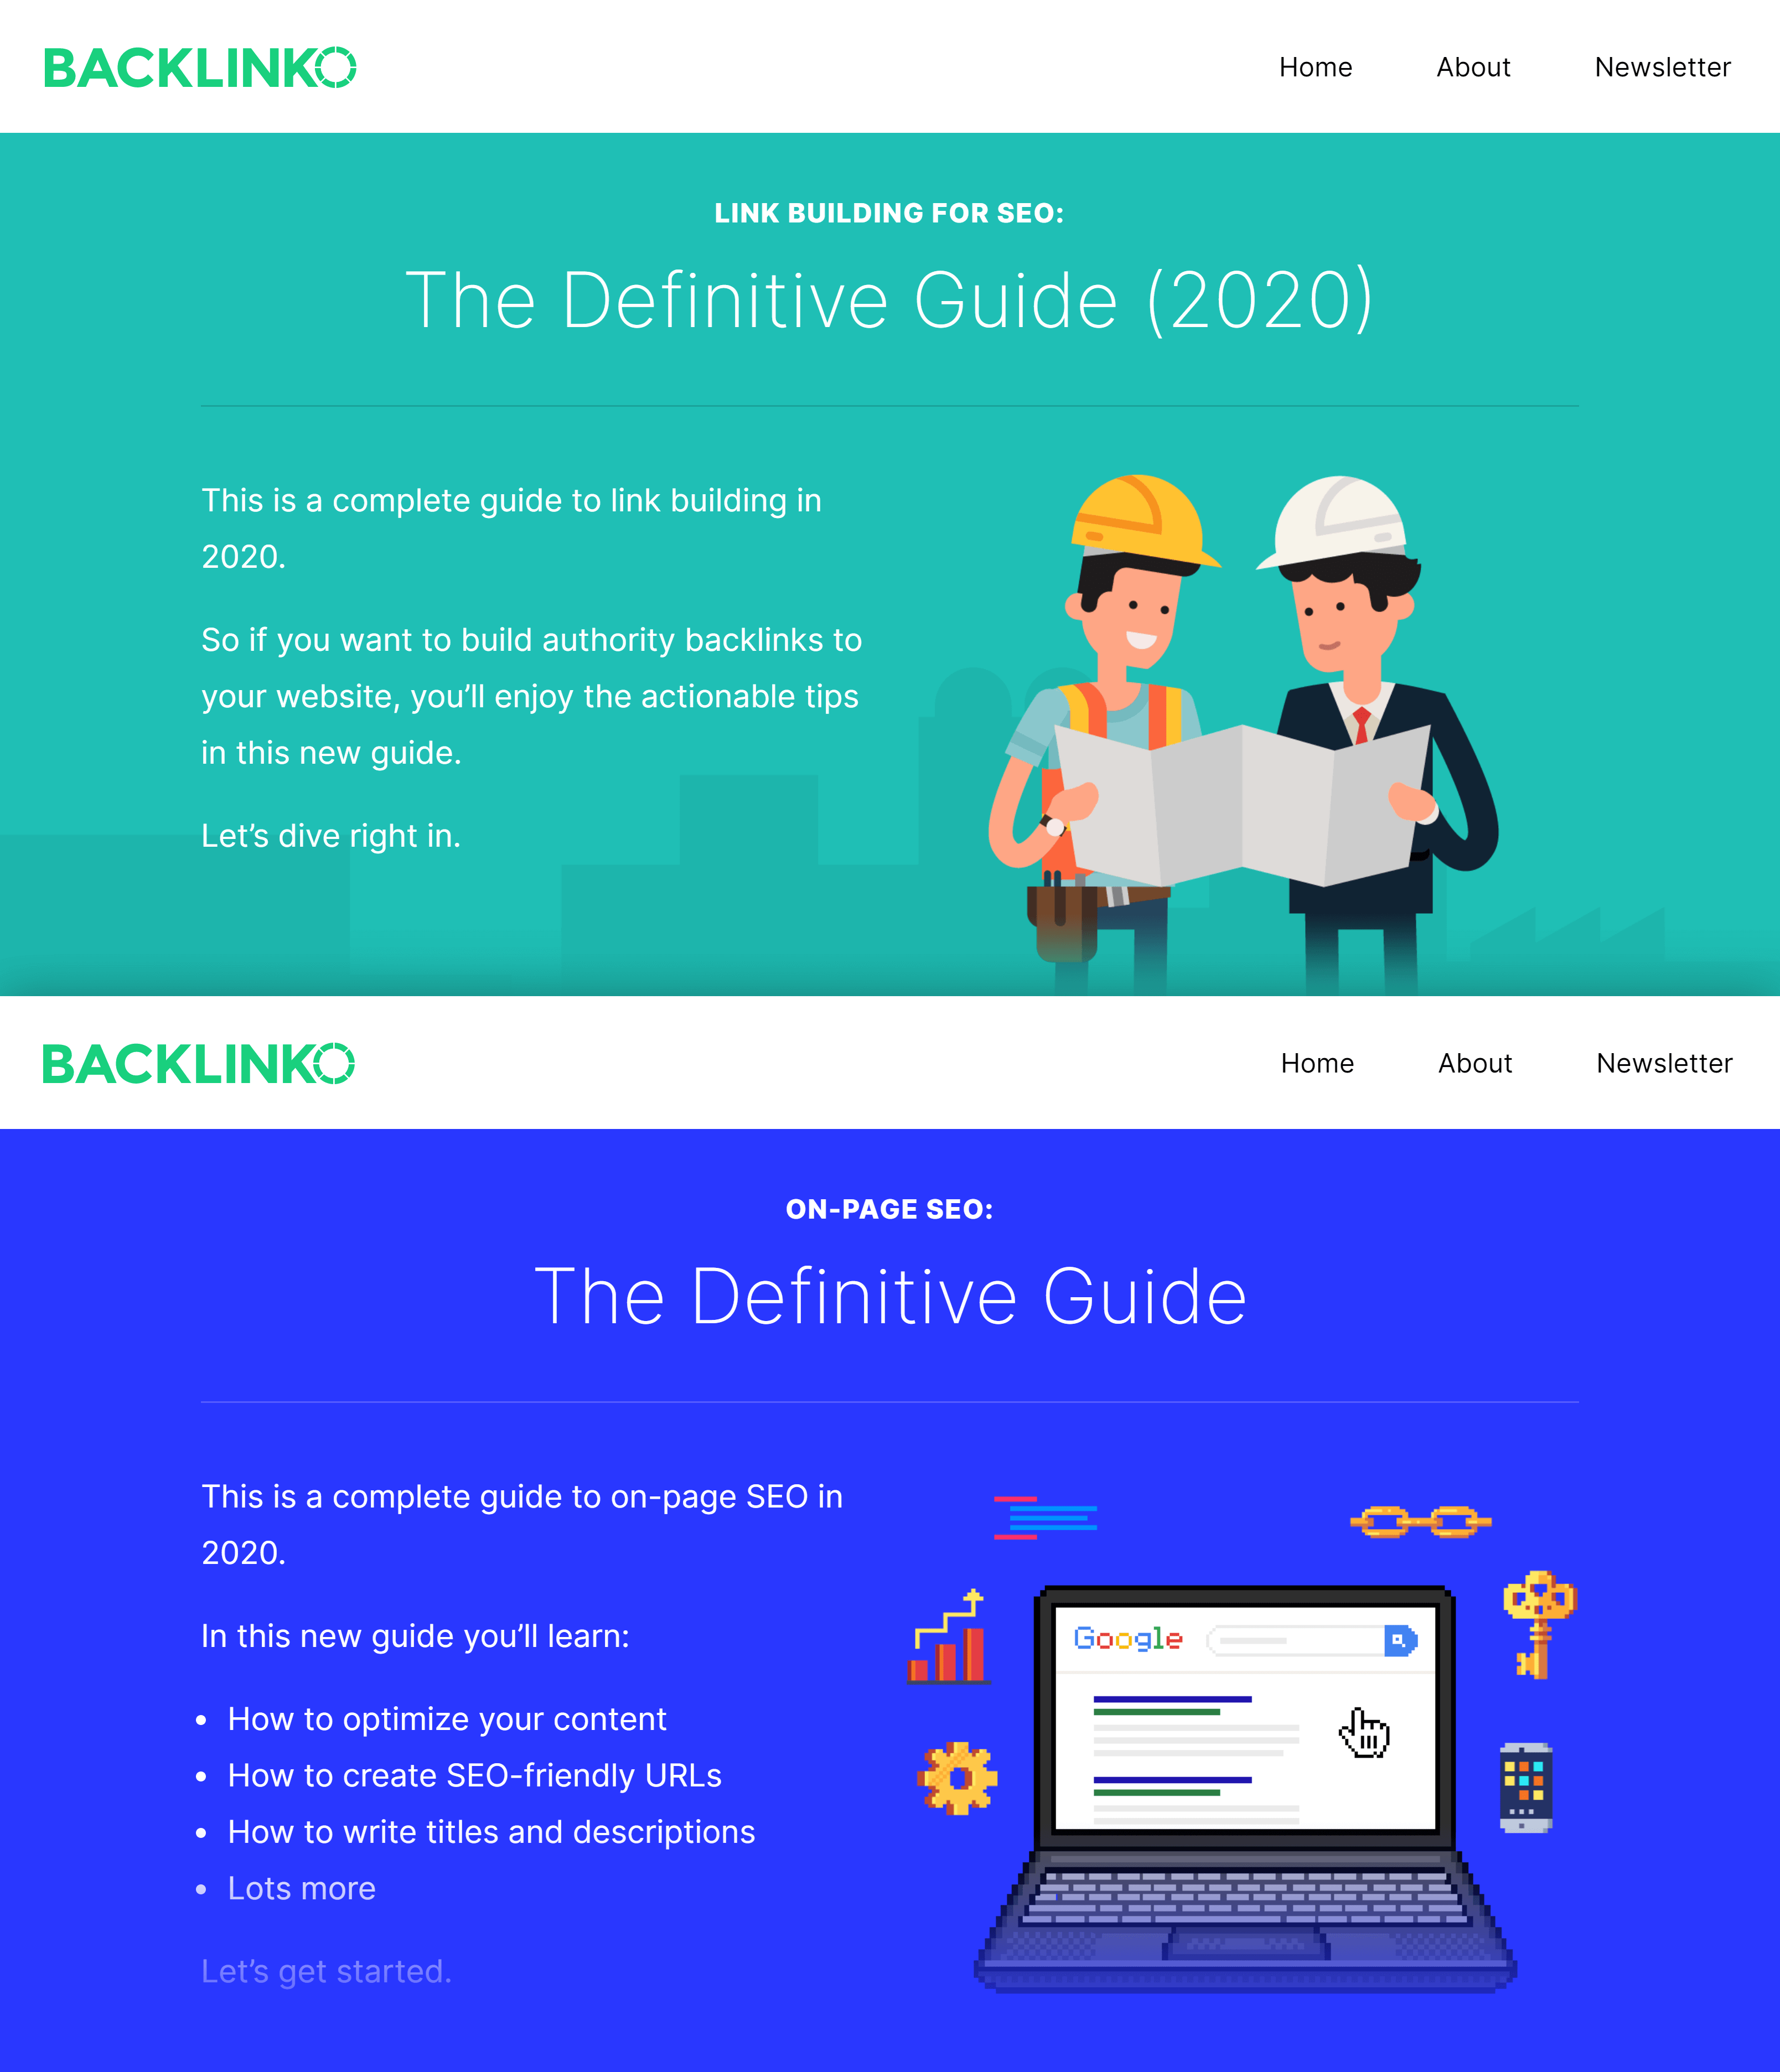 Backlinko – Link building and on-page SEO guides